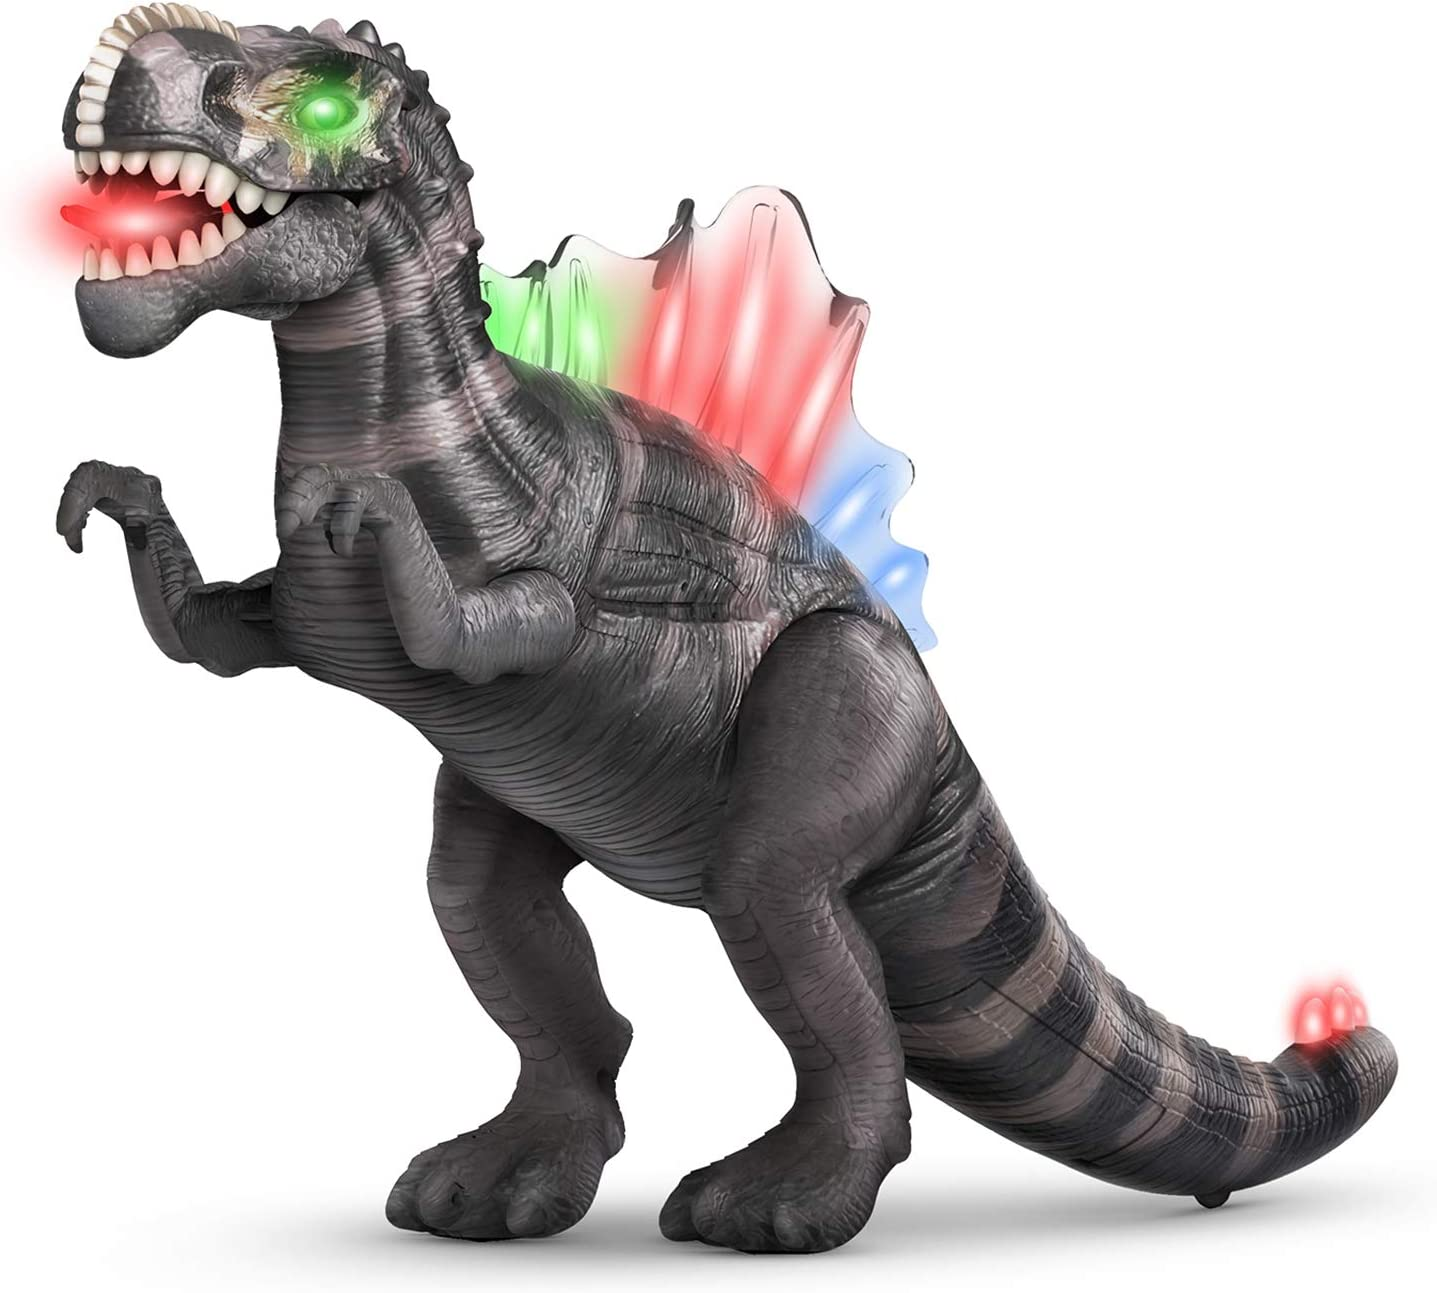 Green Jaolex Walking Dinosaur Toys with Lights and Sounds Dragon Figures for Boys and Girls 3 4 5 6 7 Year Old